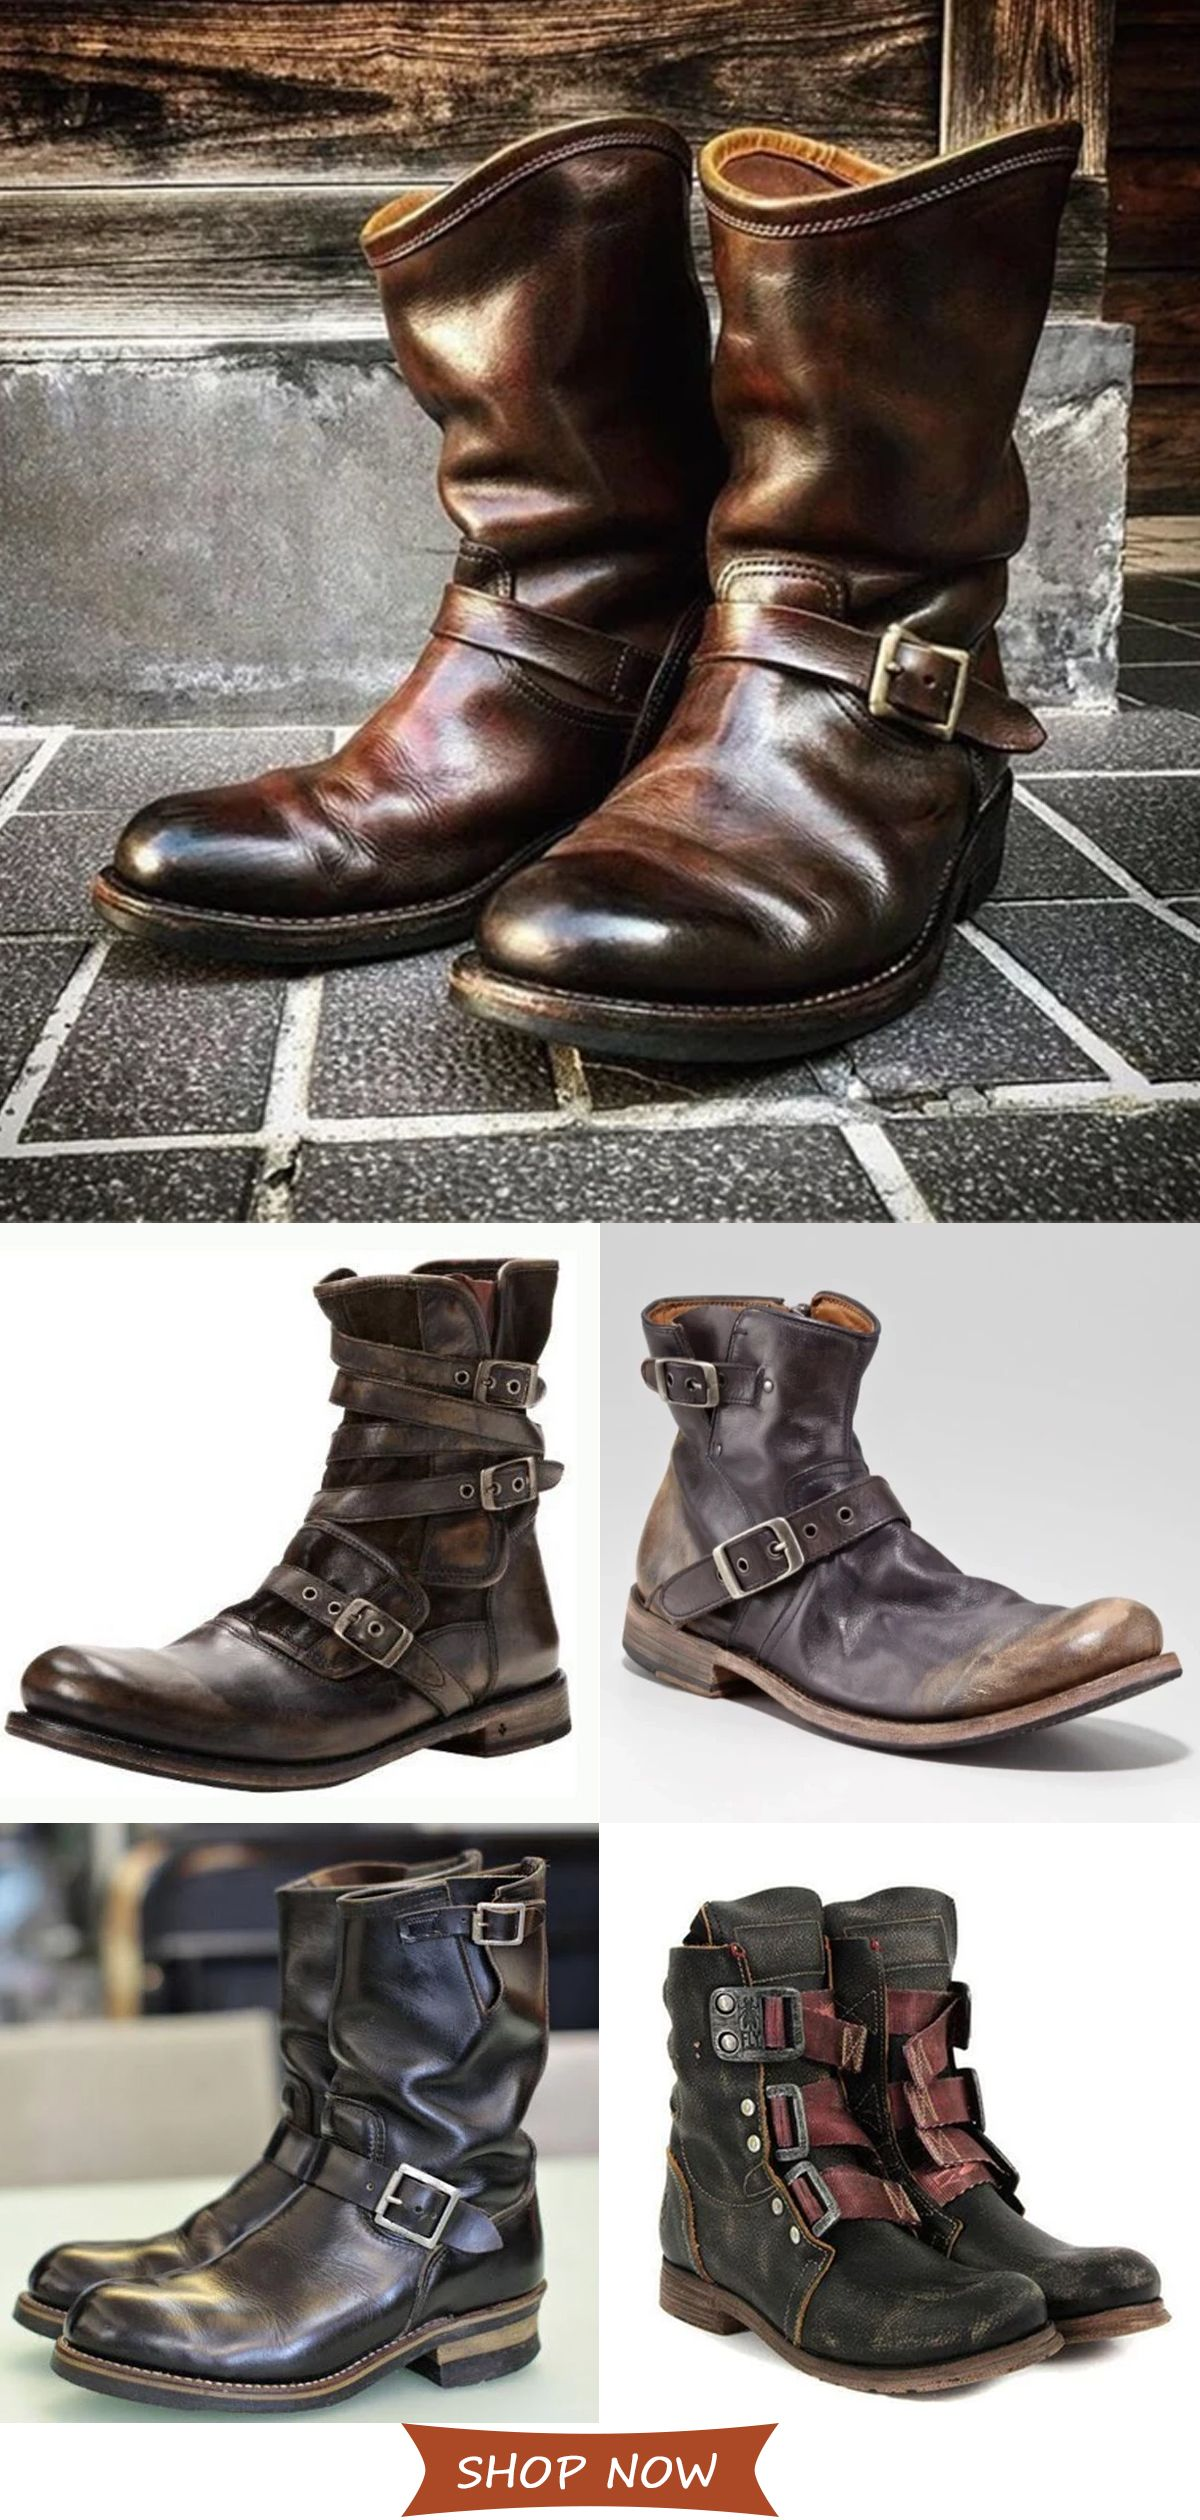 Photo of Men's Casual Vintage Boots On Sale.Hot Style√ Plus Size√ Good Quality√ Comfy√Shop now!